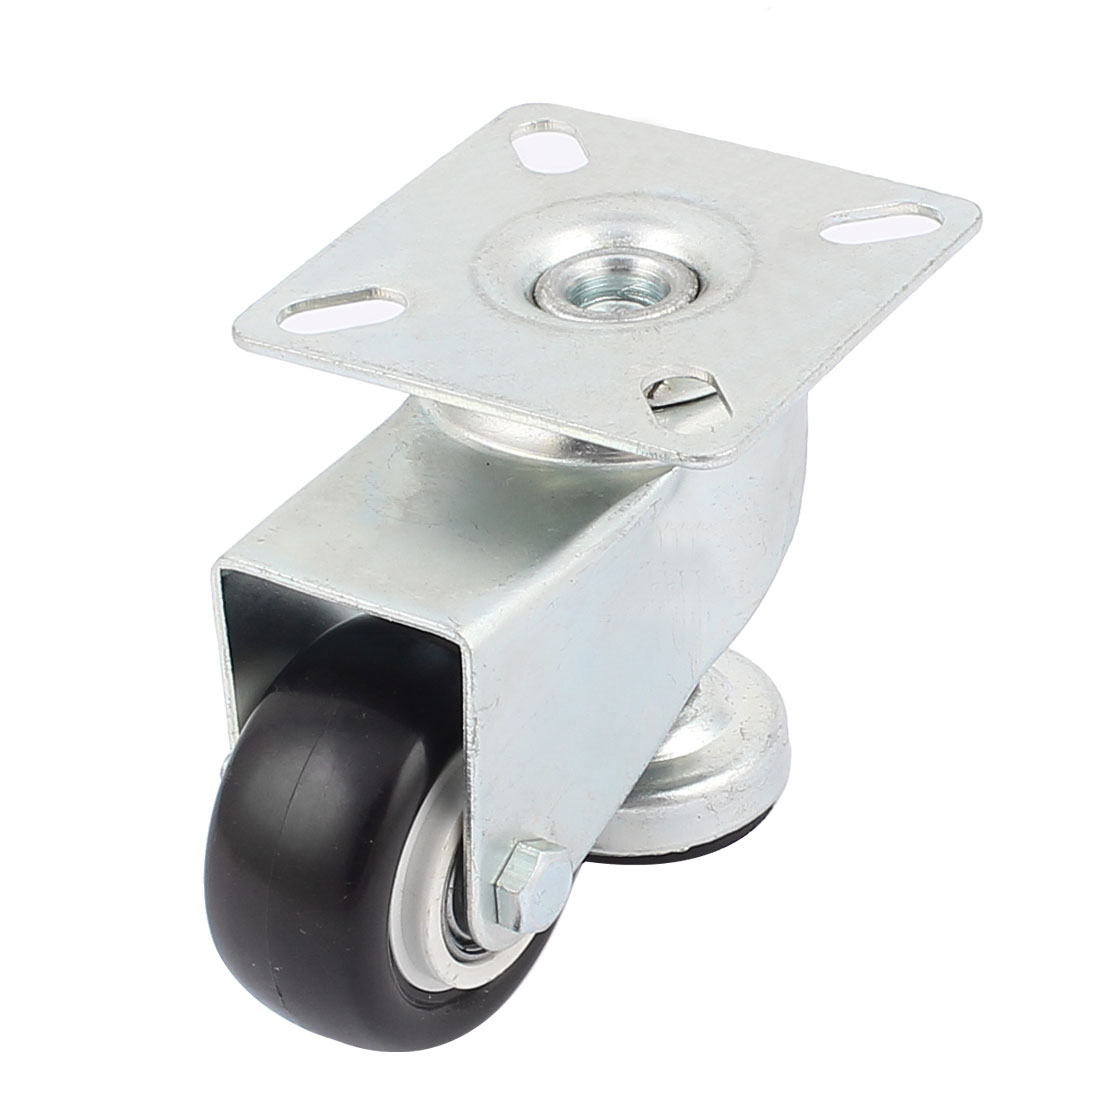 Shopping Trolley Rectangle Top Plate 360 Degree Rotary Adjustable Caster Wheel